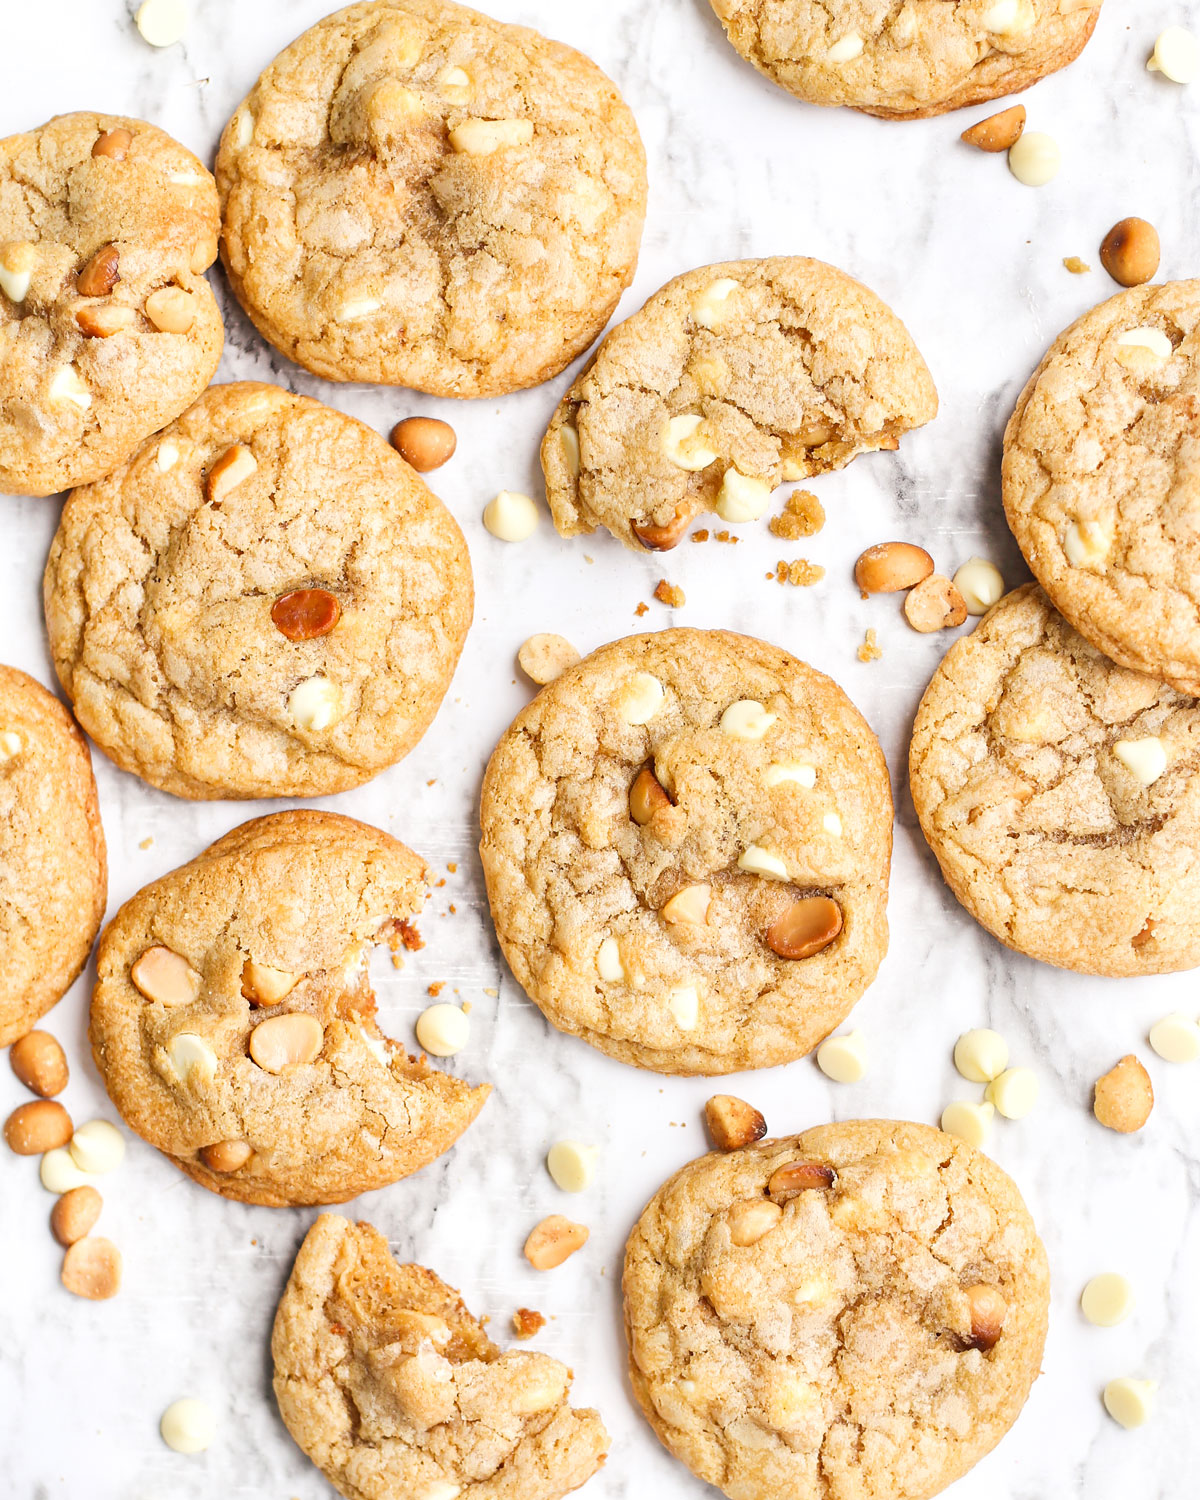 white chocolate macadamia nut cookies on marble with a bite taken from one